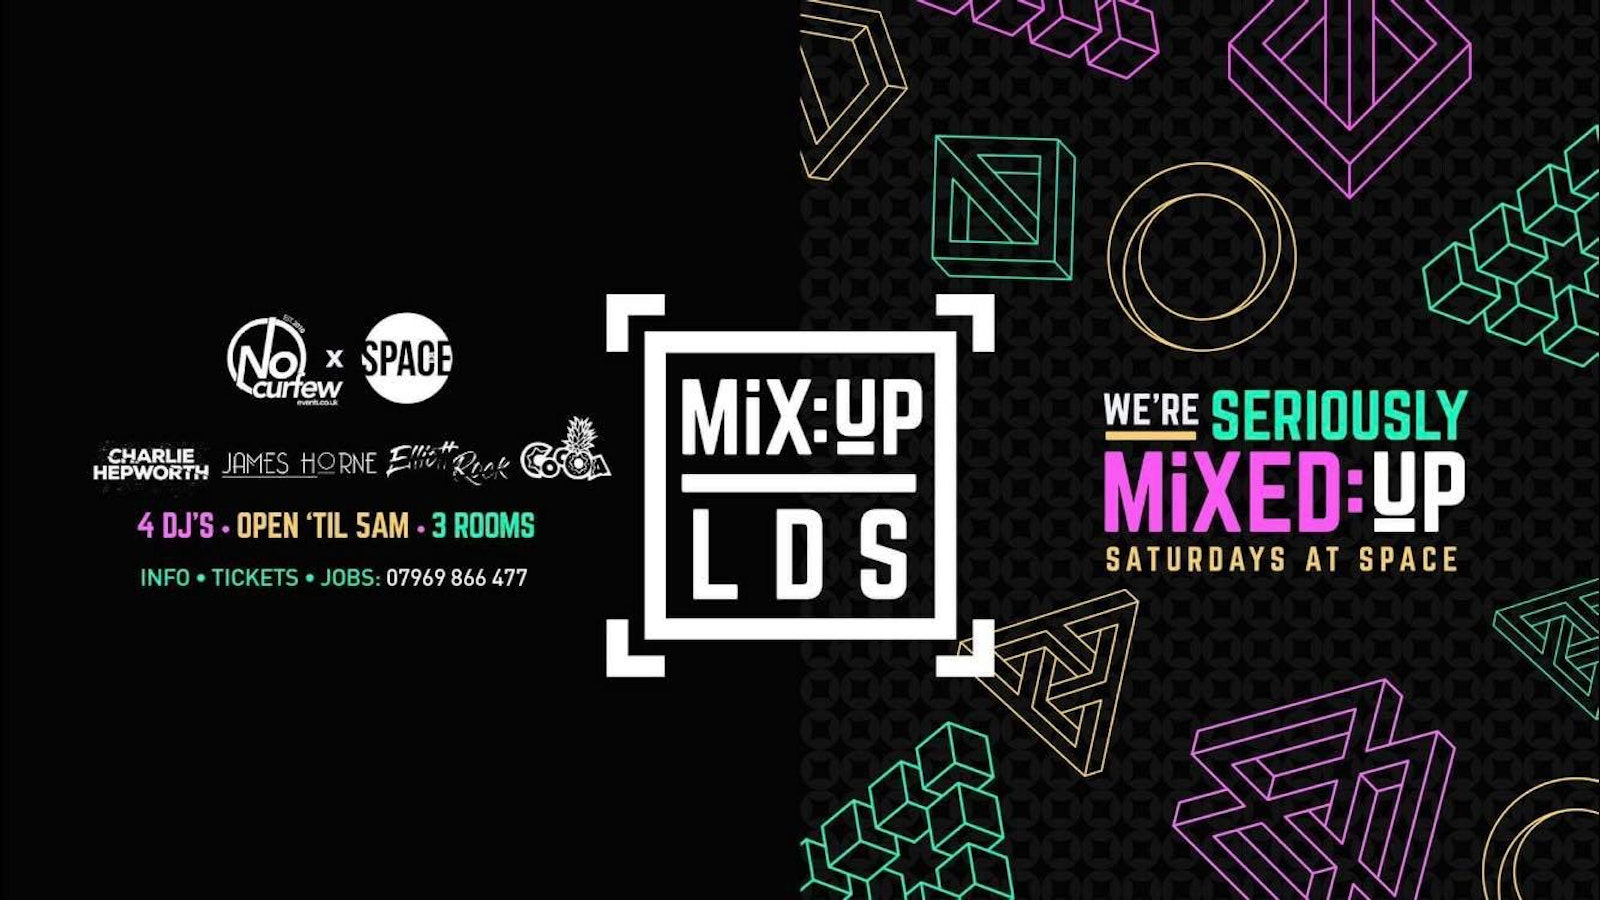 MiX:UP LDS @ Space :: Every Saturday :: £1.50 Drinks!